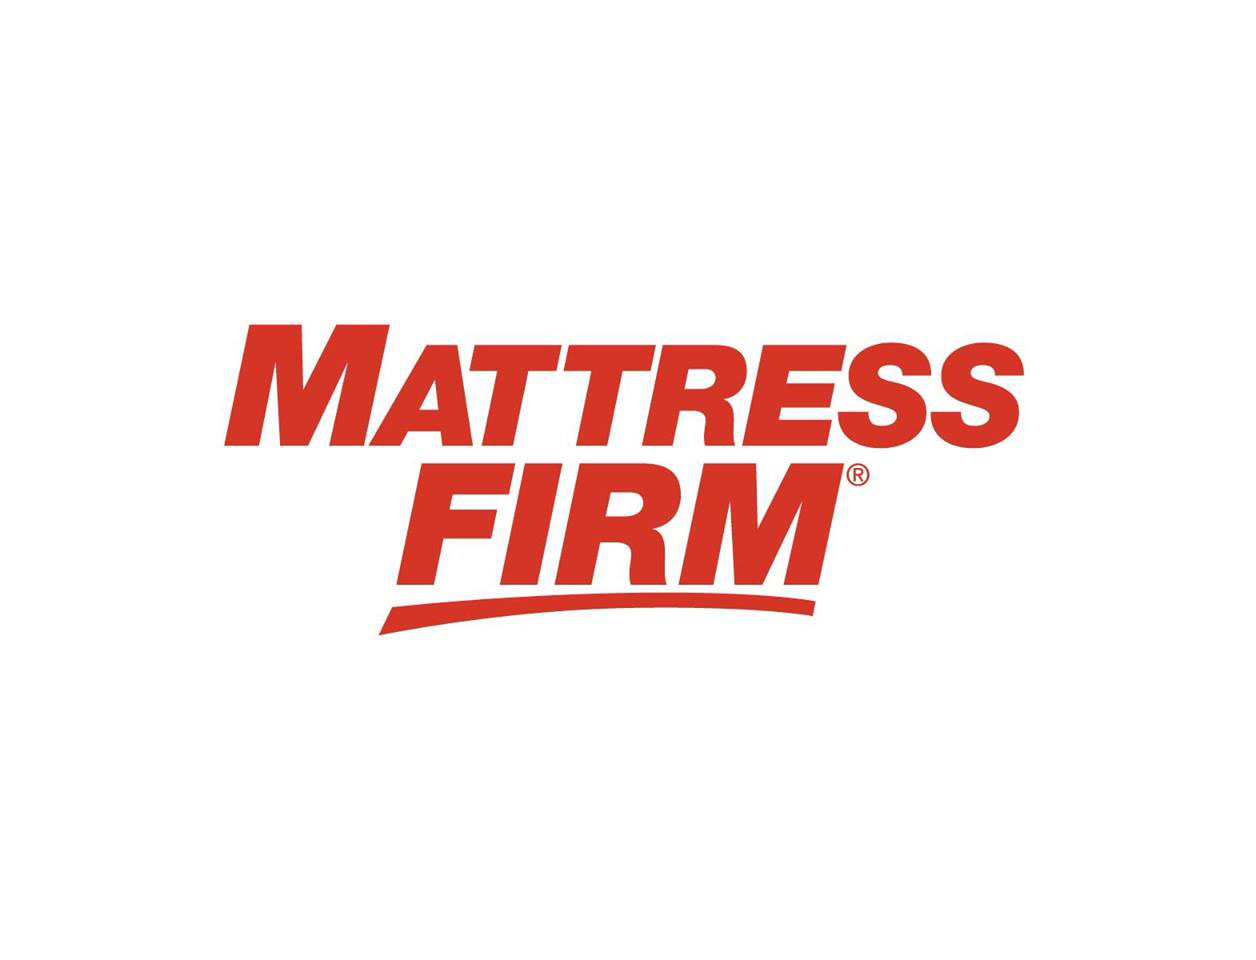 Consumers Ask Why Are There So Many Mattress Firm Stores